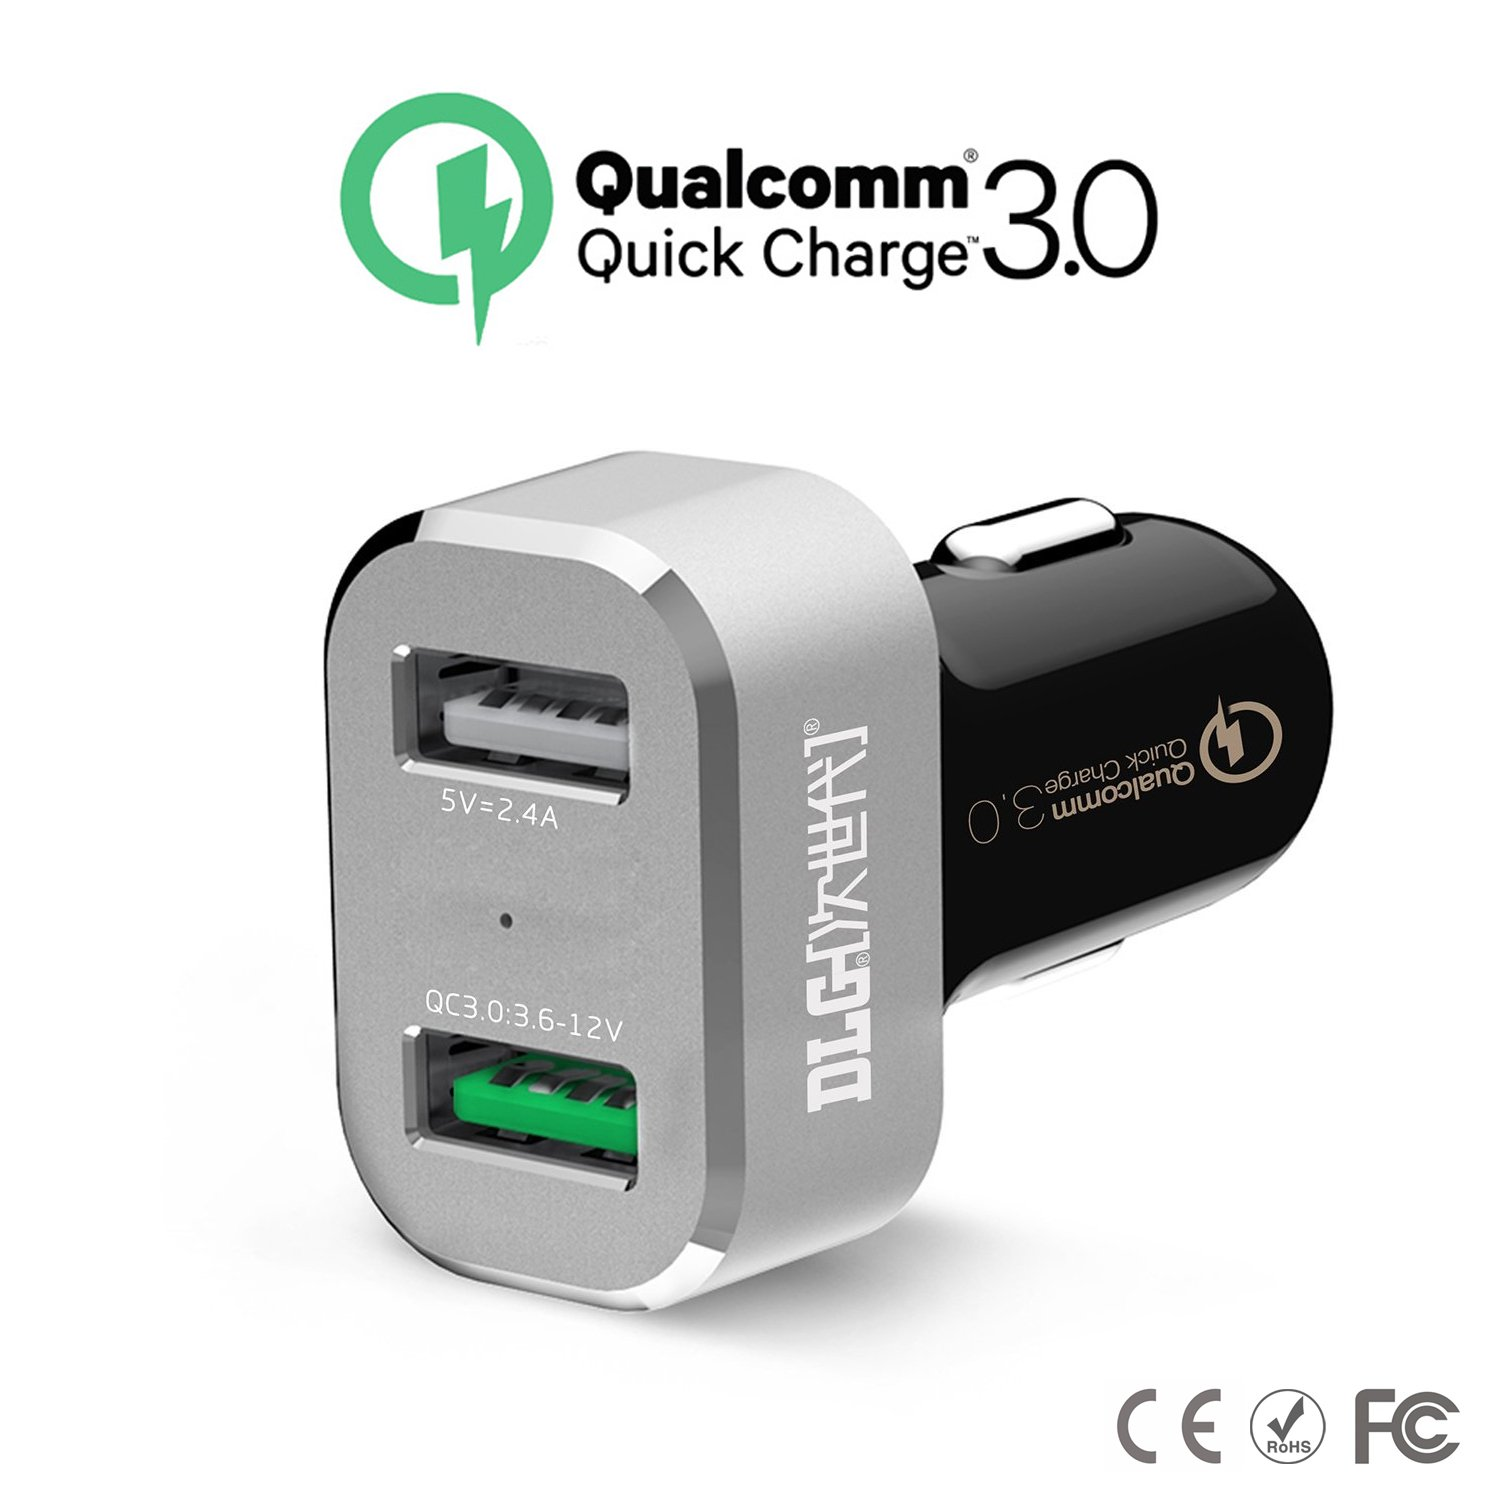 Phone7//6s// Plus HTC and More S7//S7 Edge//S6//Edge//+,Nexus 6P//5X,LG G5 Nexus DLG Quick Charge 3.0 Dual USB Port Car Charger Qualcomm Adapter for Galaxy Note 5 LG iPad Pro//Air 2// Mini